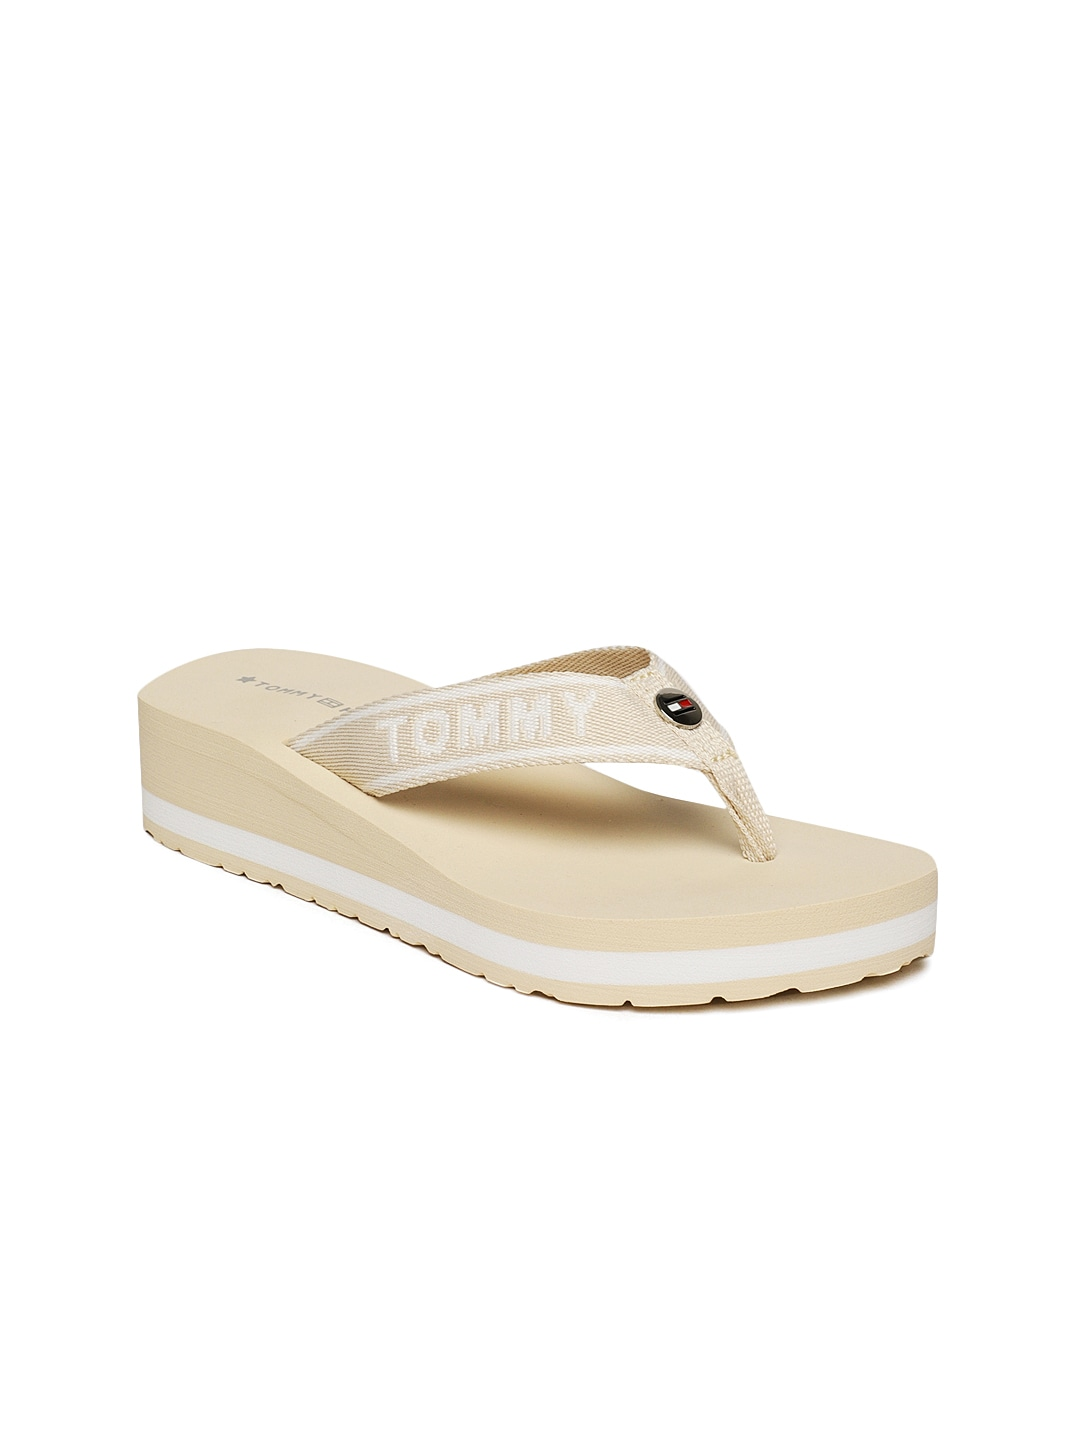 02c5c73bf Tommy Hilfiger Women Flip Flops - Buy Tommy Hilfiger Women Flip Flops online  in India